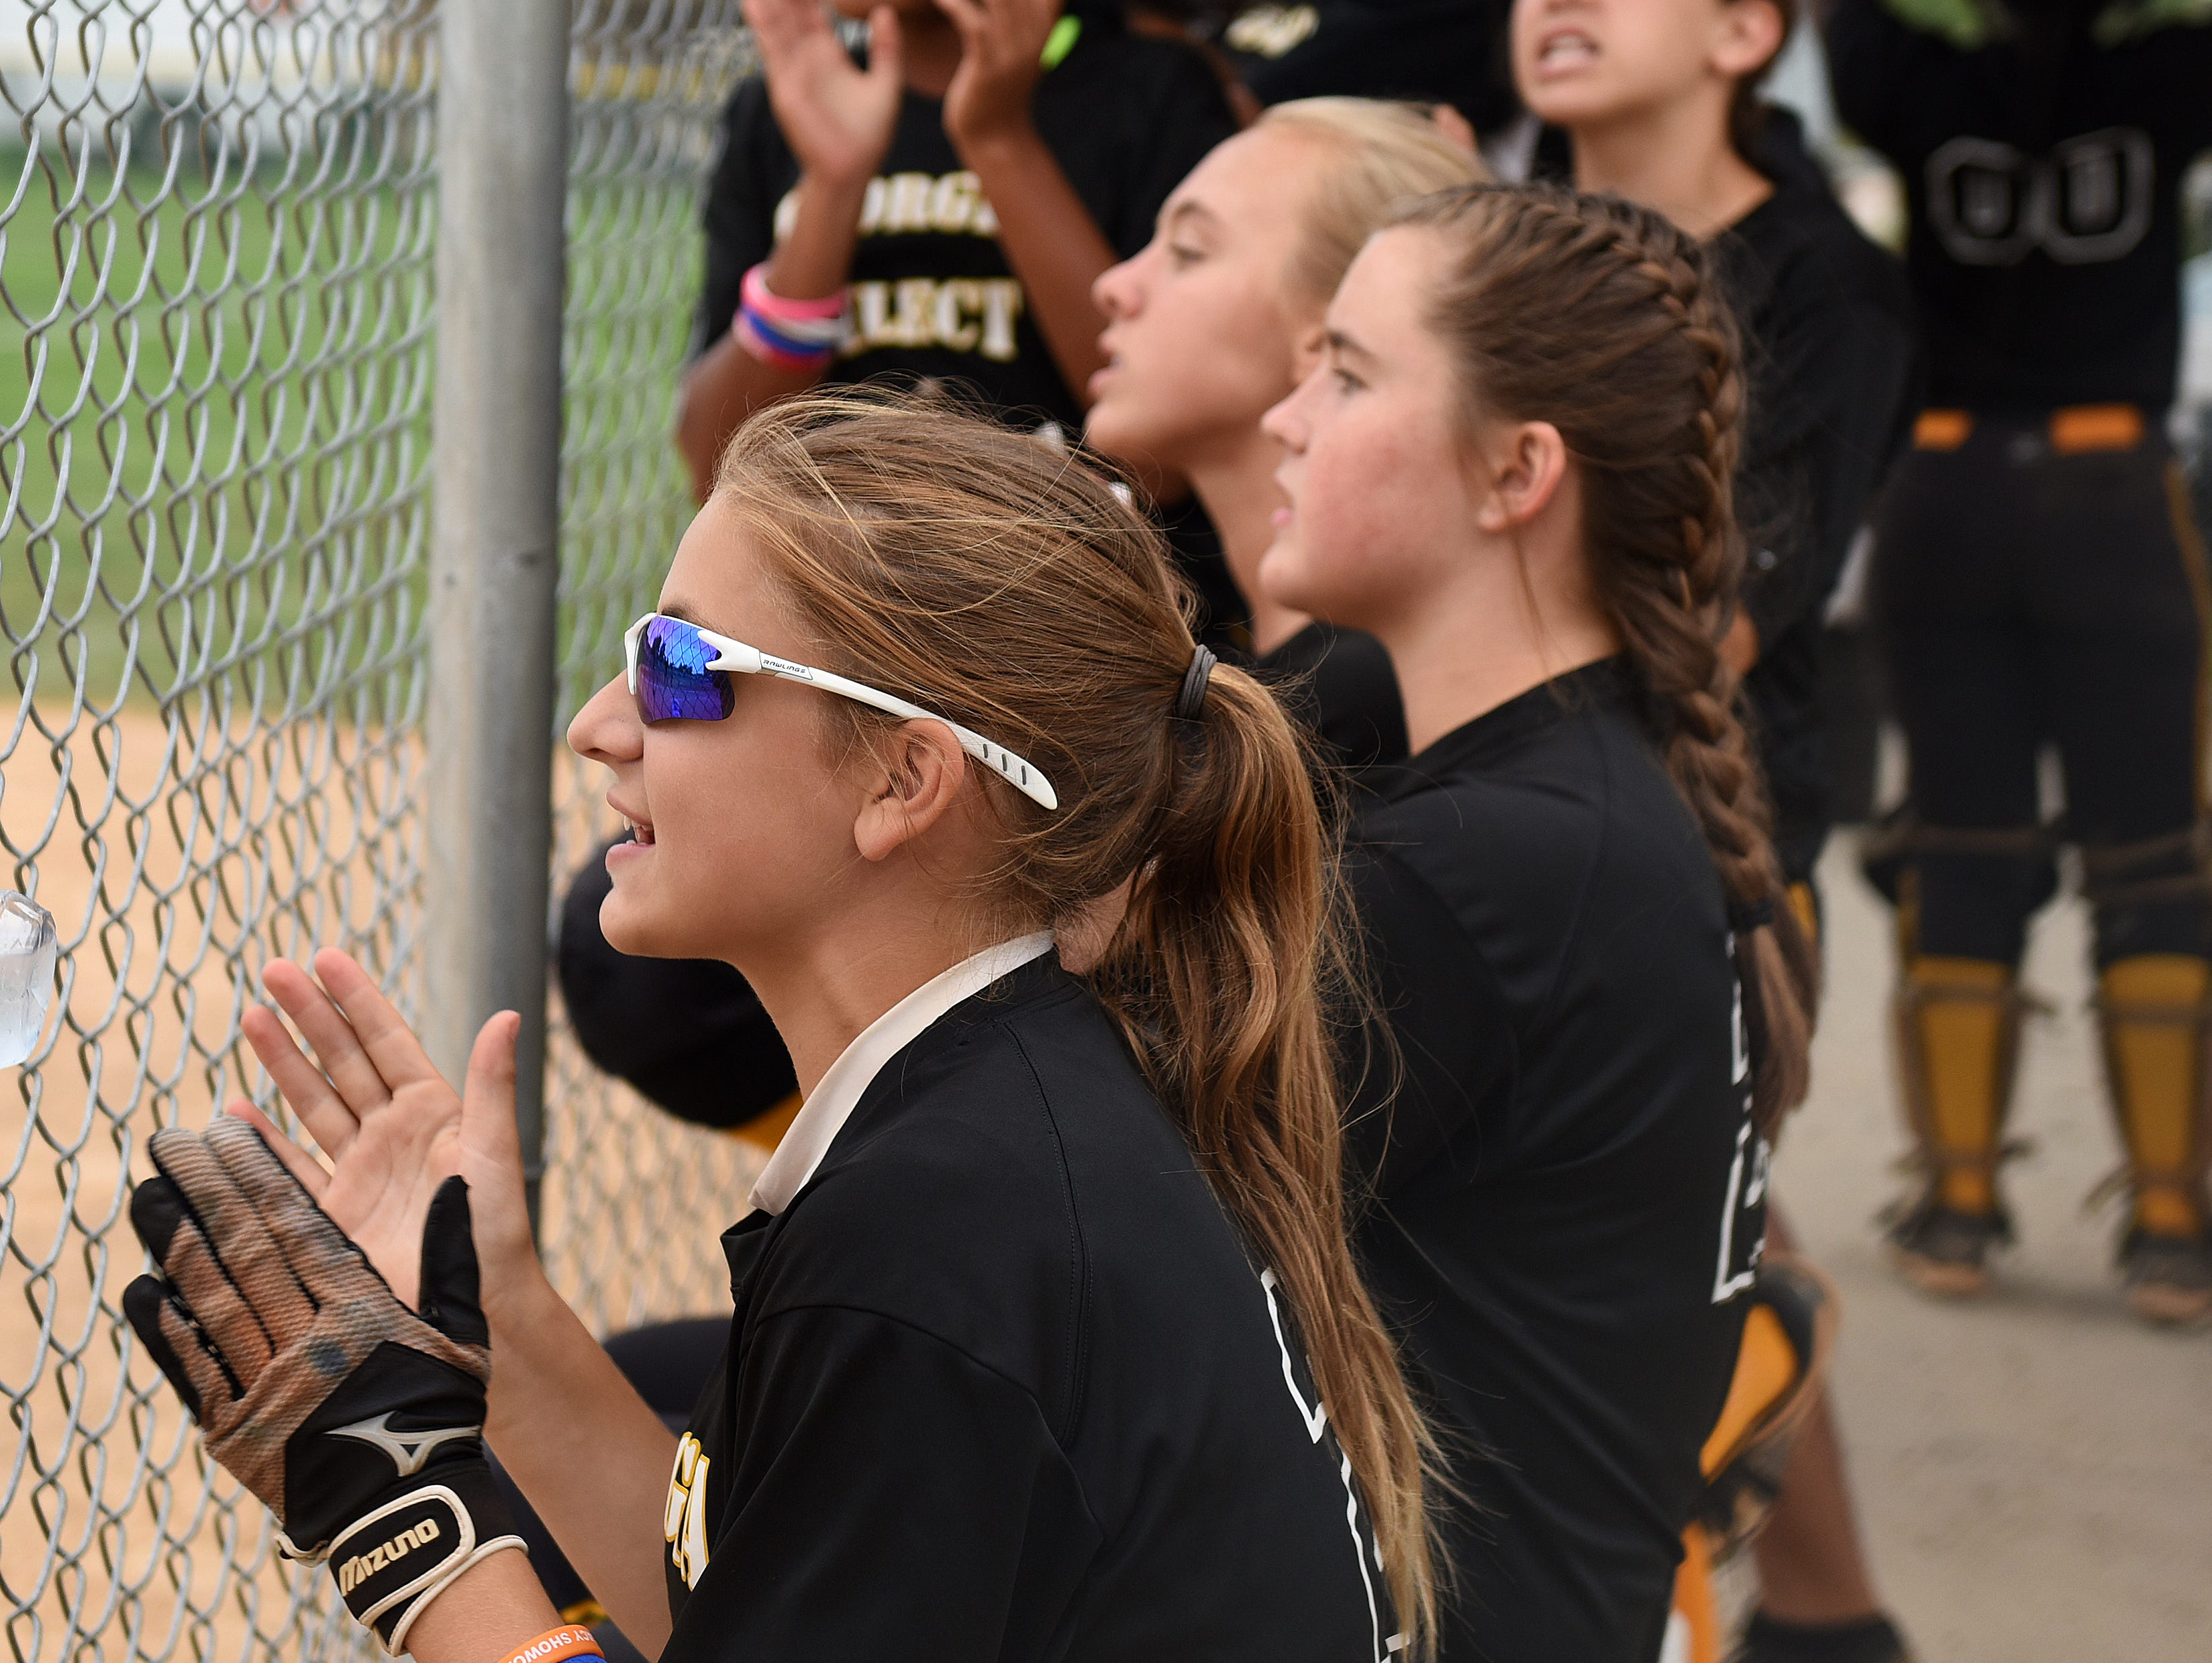 George Select chant as their team plays in the ASA 14U national softball tournament at Sherman Park in Sioux Falls, S.D., Monday, Aug. 1, 2016.